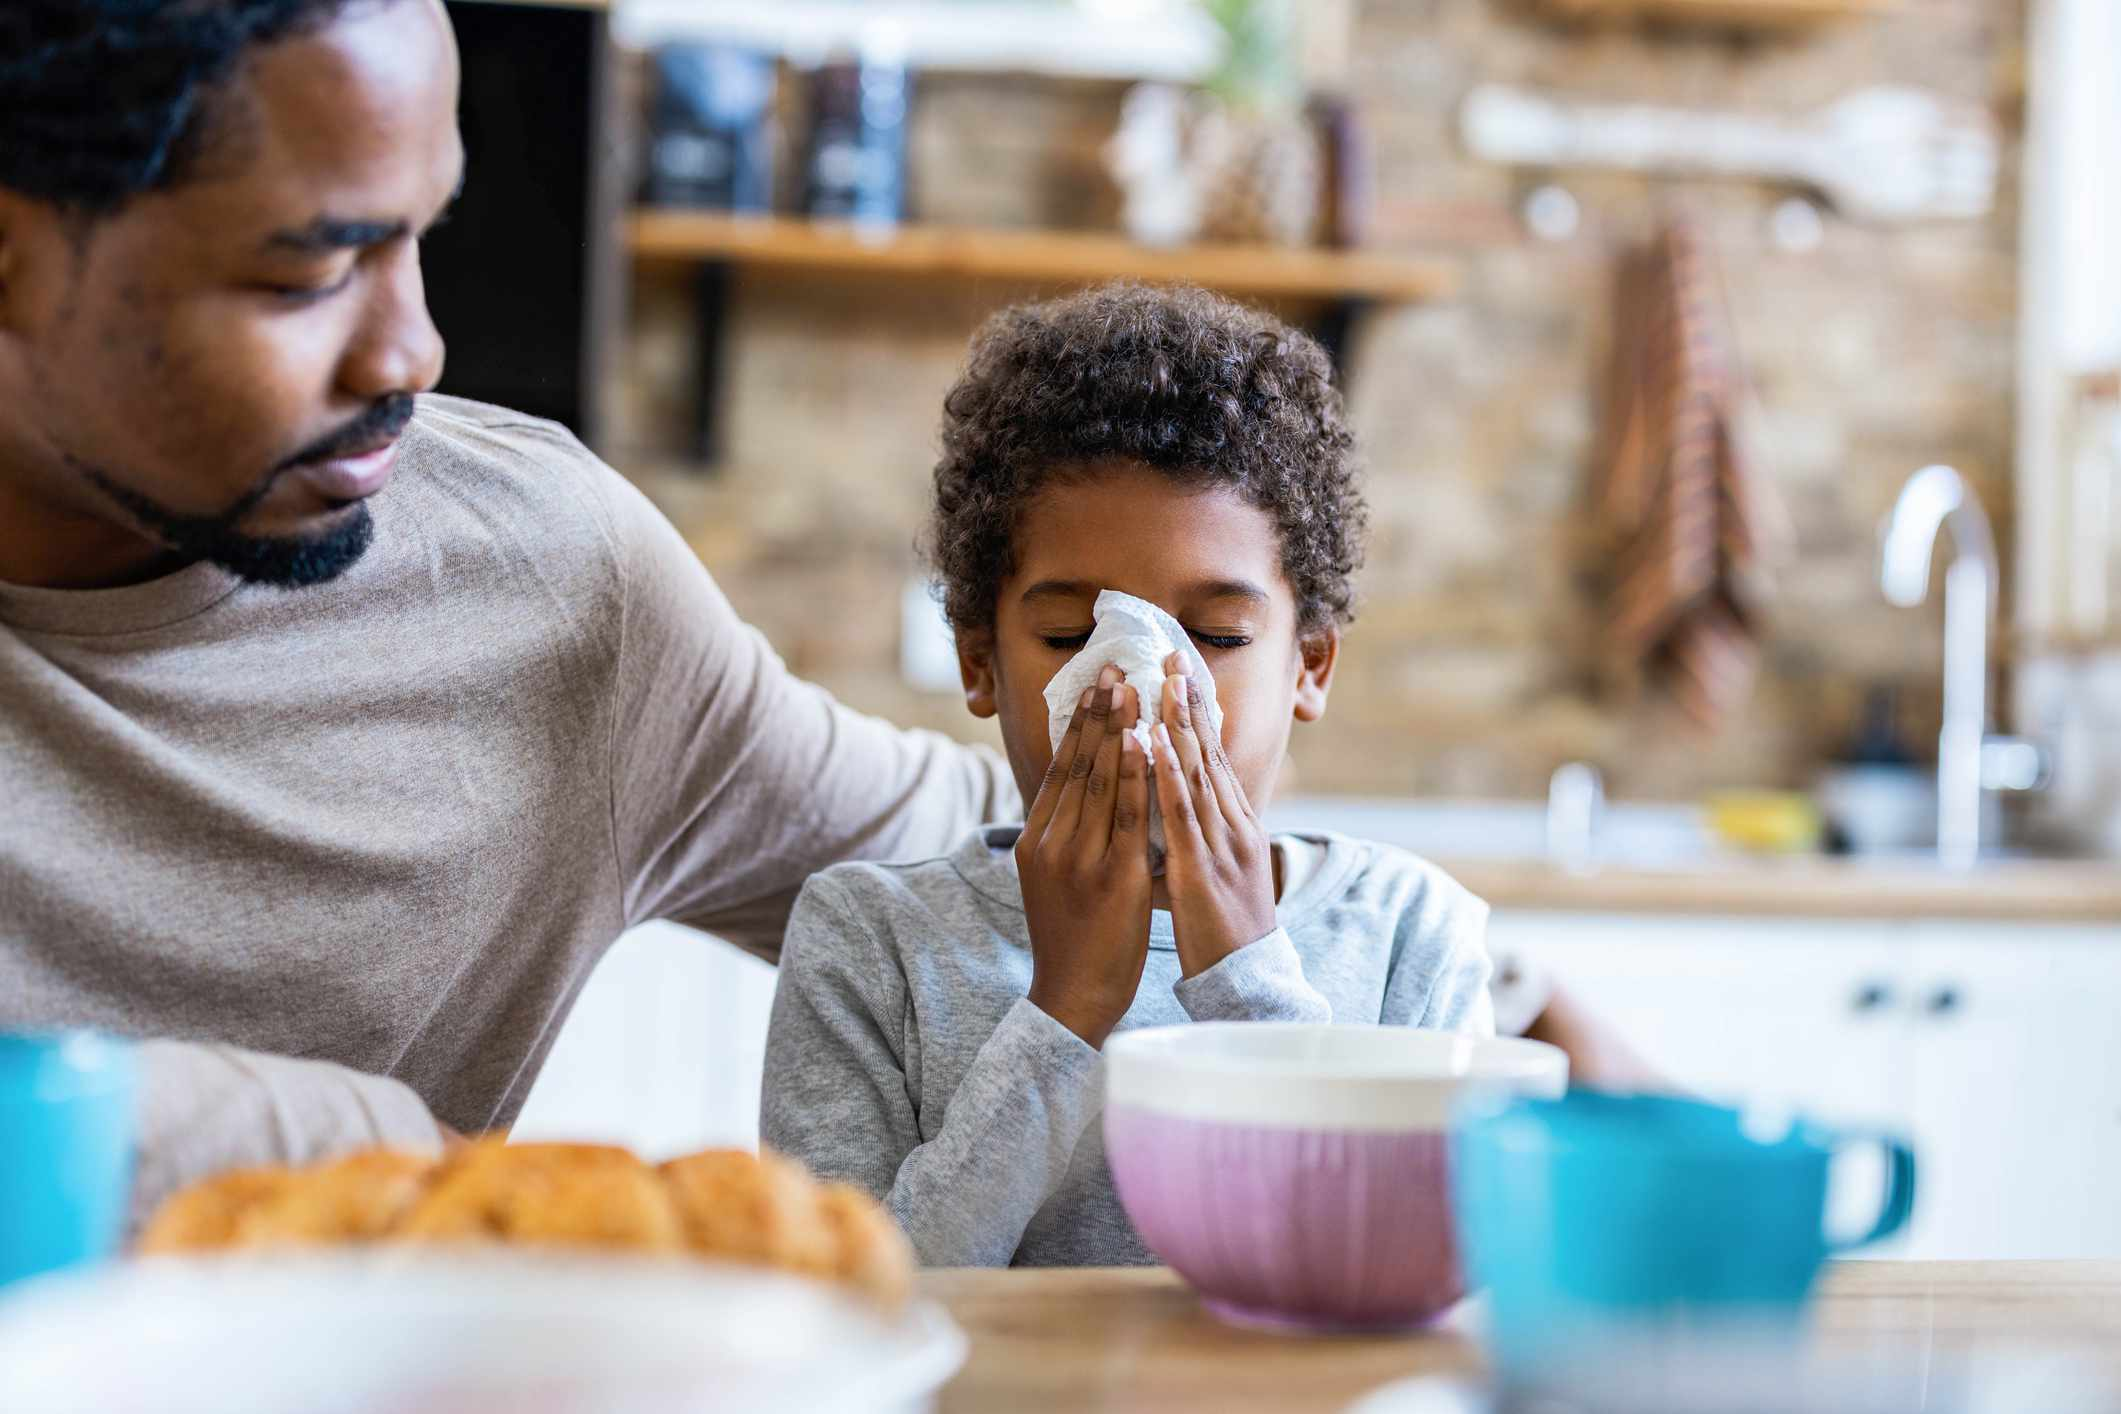 father and son with son holding tissue